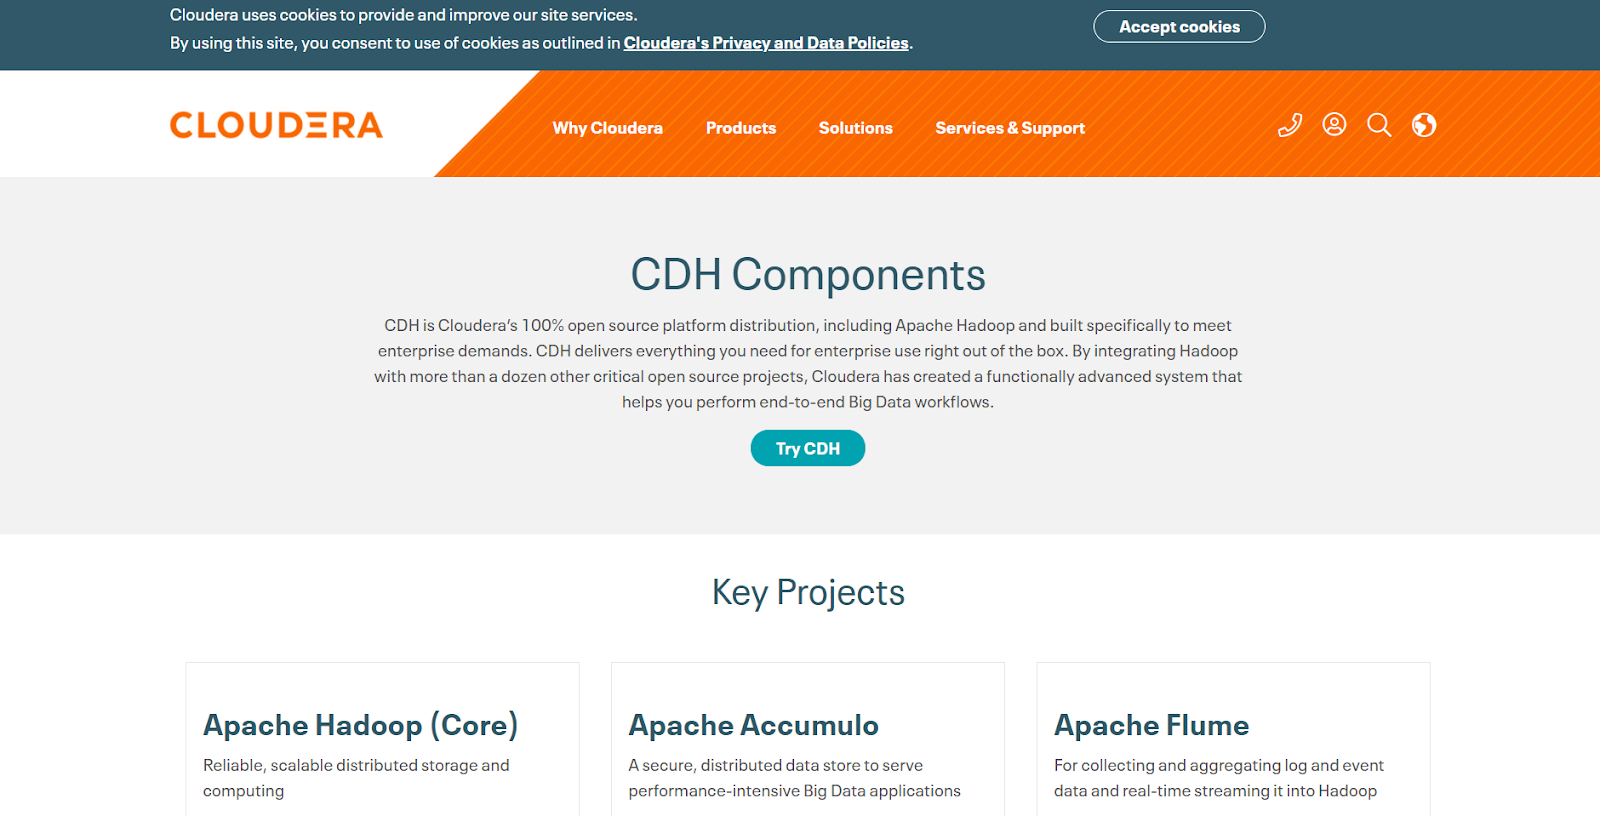 CDH is one of the big data tools